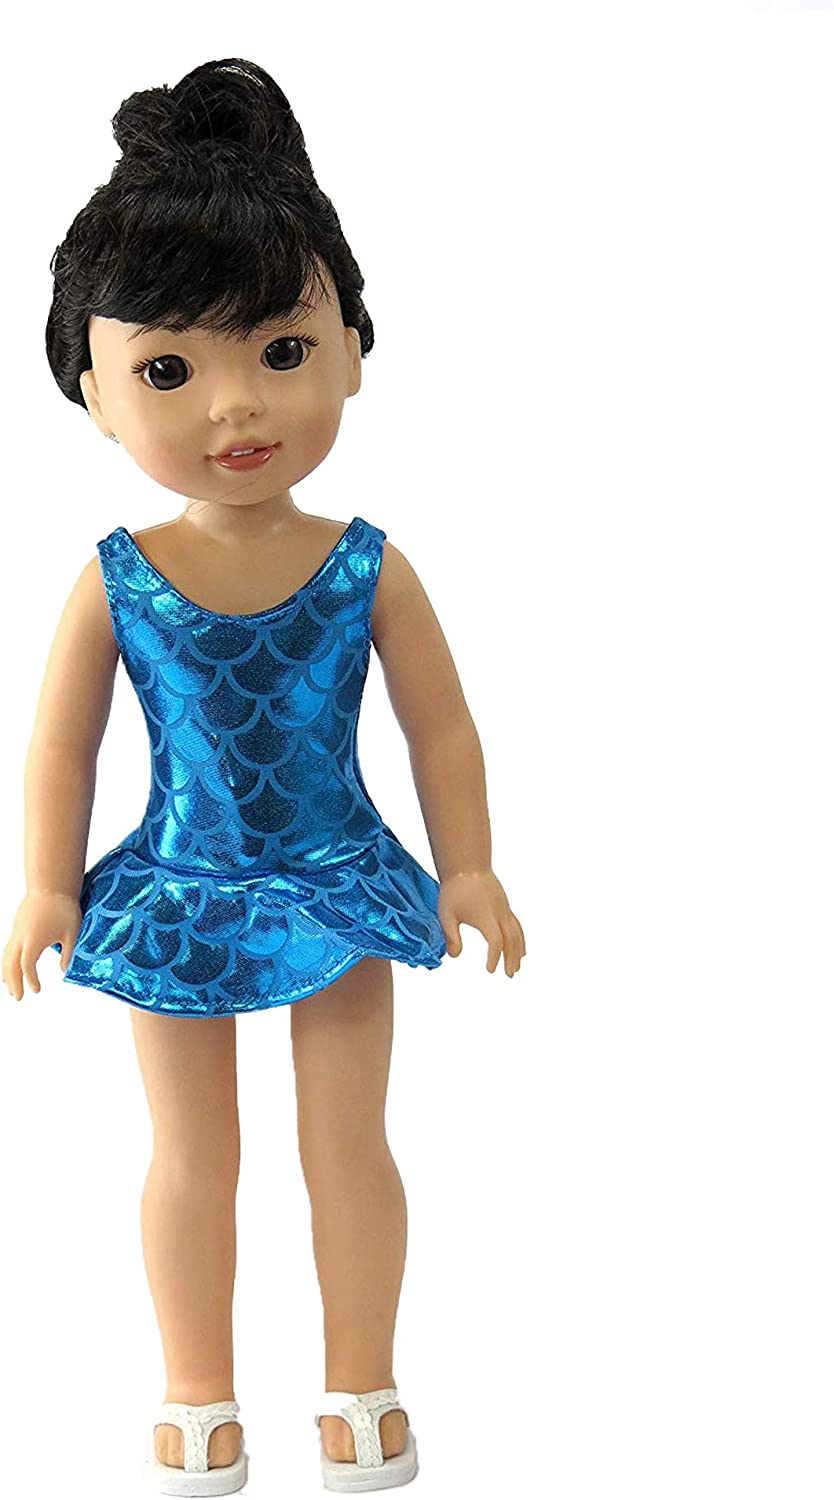 Doll Clothes for 18 inch American Girl Metallic Red White /& Blue Swimsuit